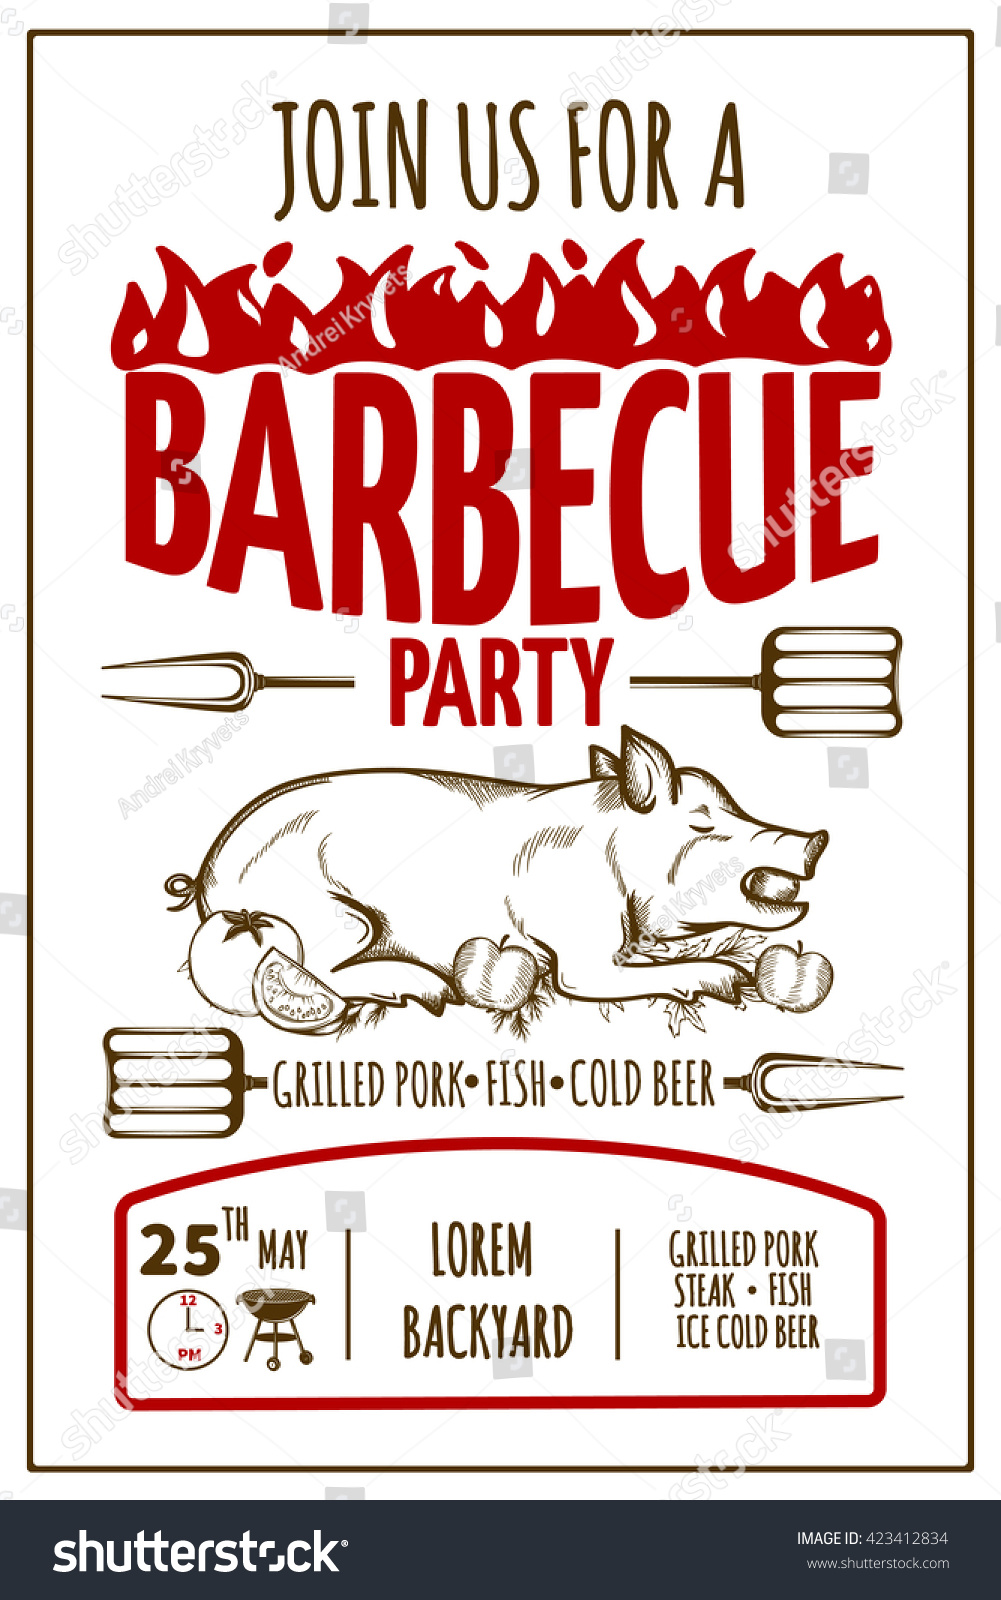 Barbeque Party Invitation Card Grilled Pork Stock Vector (Royalty ...